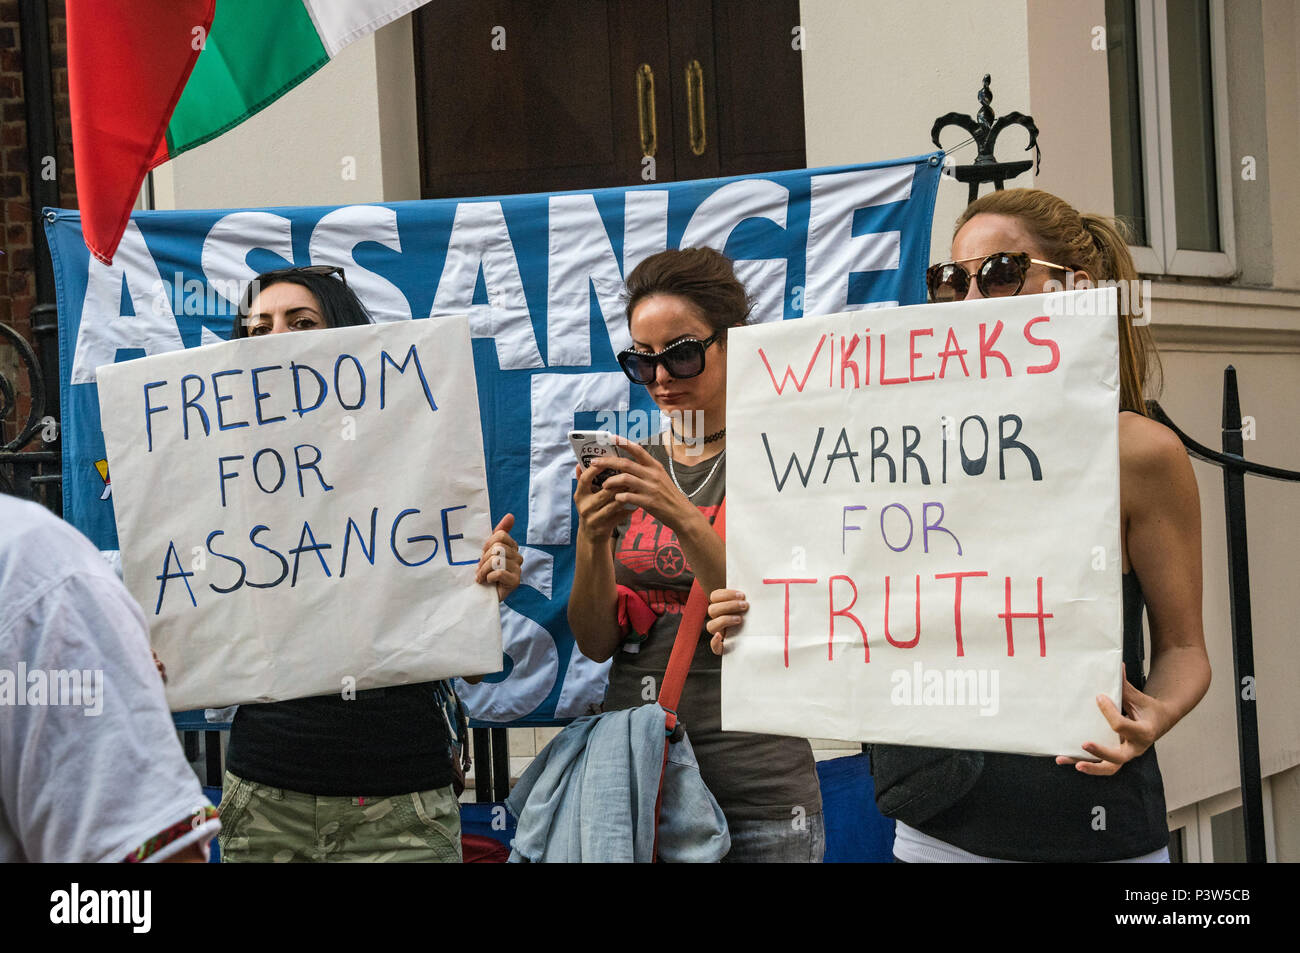 London, UK. 19th June 2018. People with posters 'Freedom for Assange' and 'Wikileaks Warrior For Truth' at the rally outside the Ecuadorian Embassy in London calling for Julian Assange to be allowed safe passage to the place of his choice to mark six years since he was given asylum there. They called for the UK authorities to allow him to leave the embassy and go to the country of his choice without being arrested. Credit: Peter Marshall/Alamy Live News - Stock Image